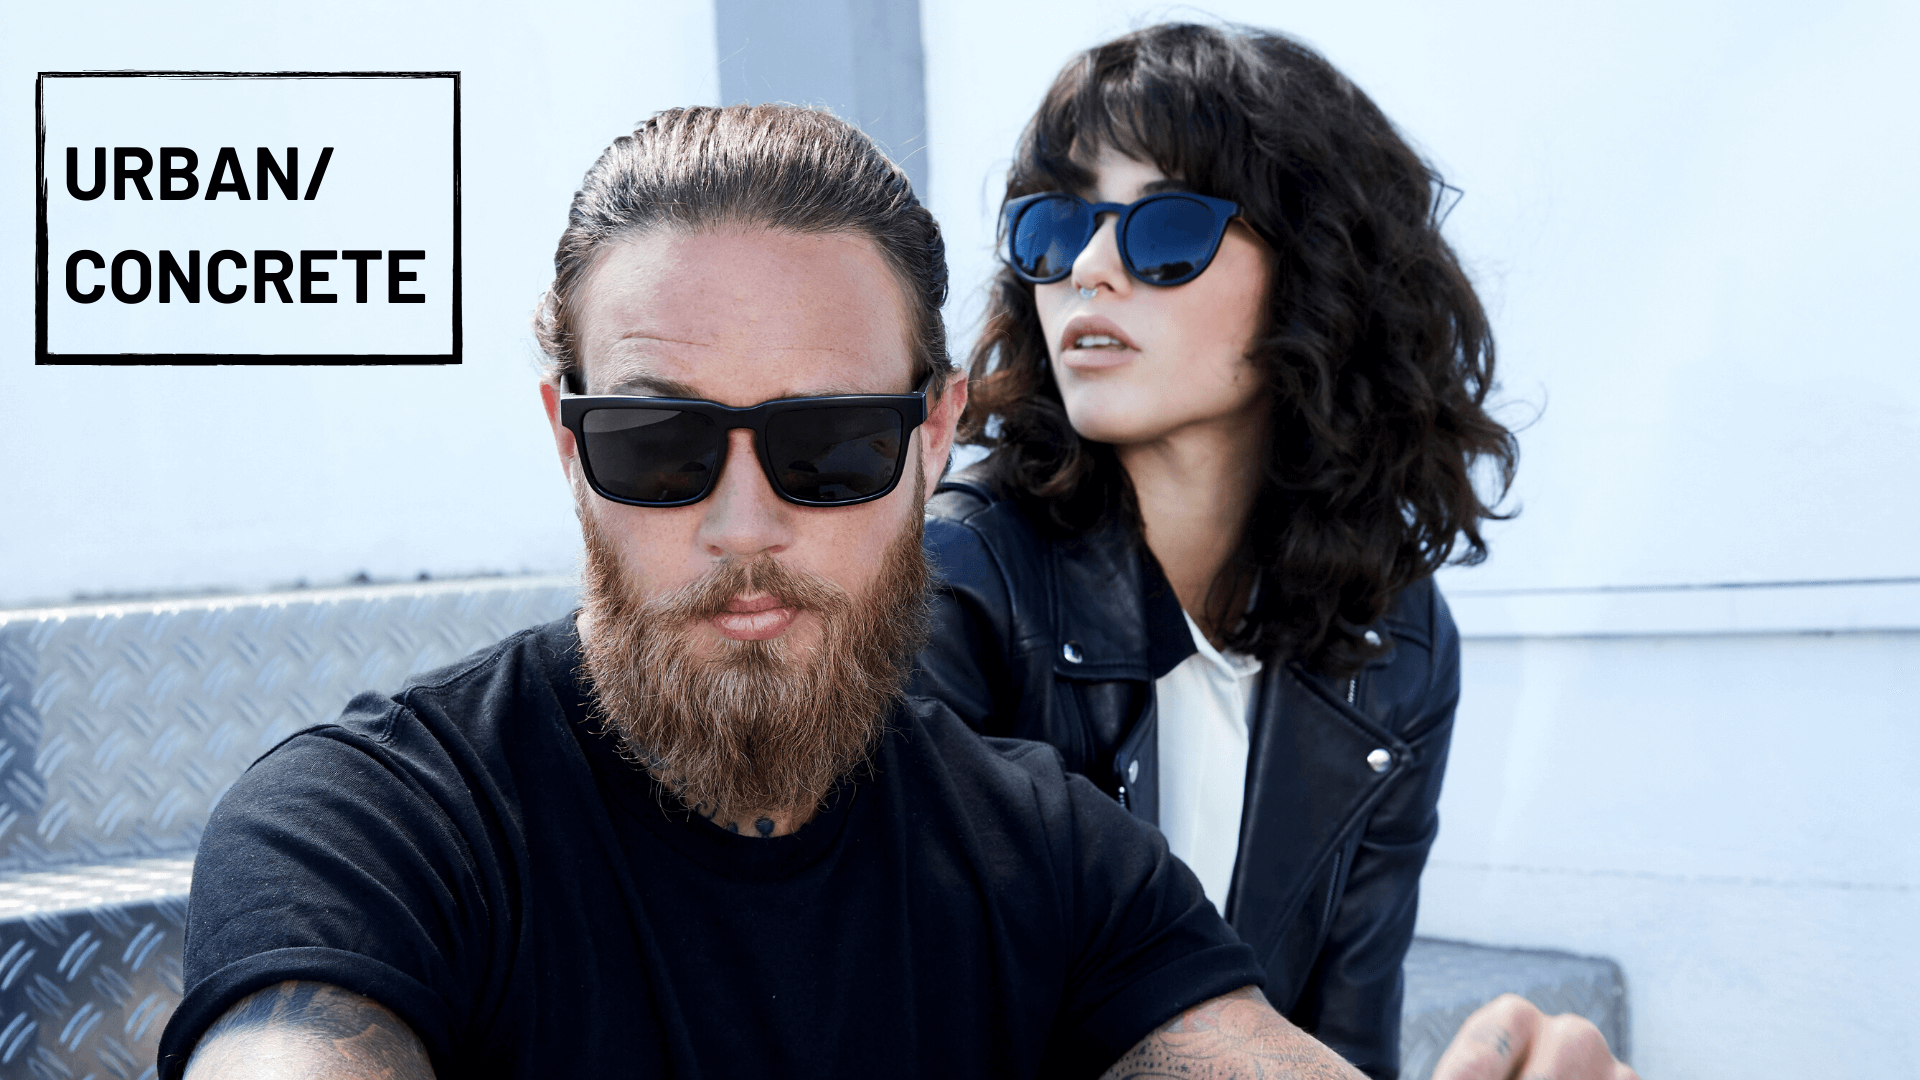 header image sunglasses lookbook urban concrete